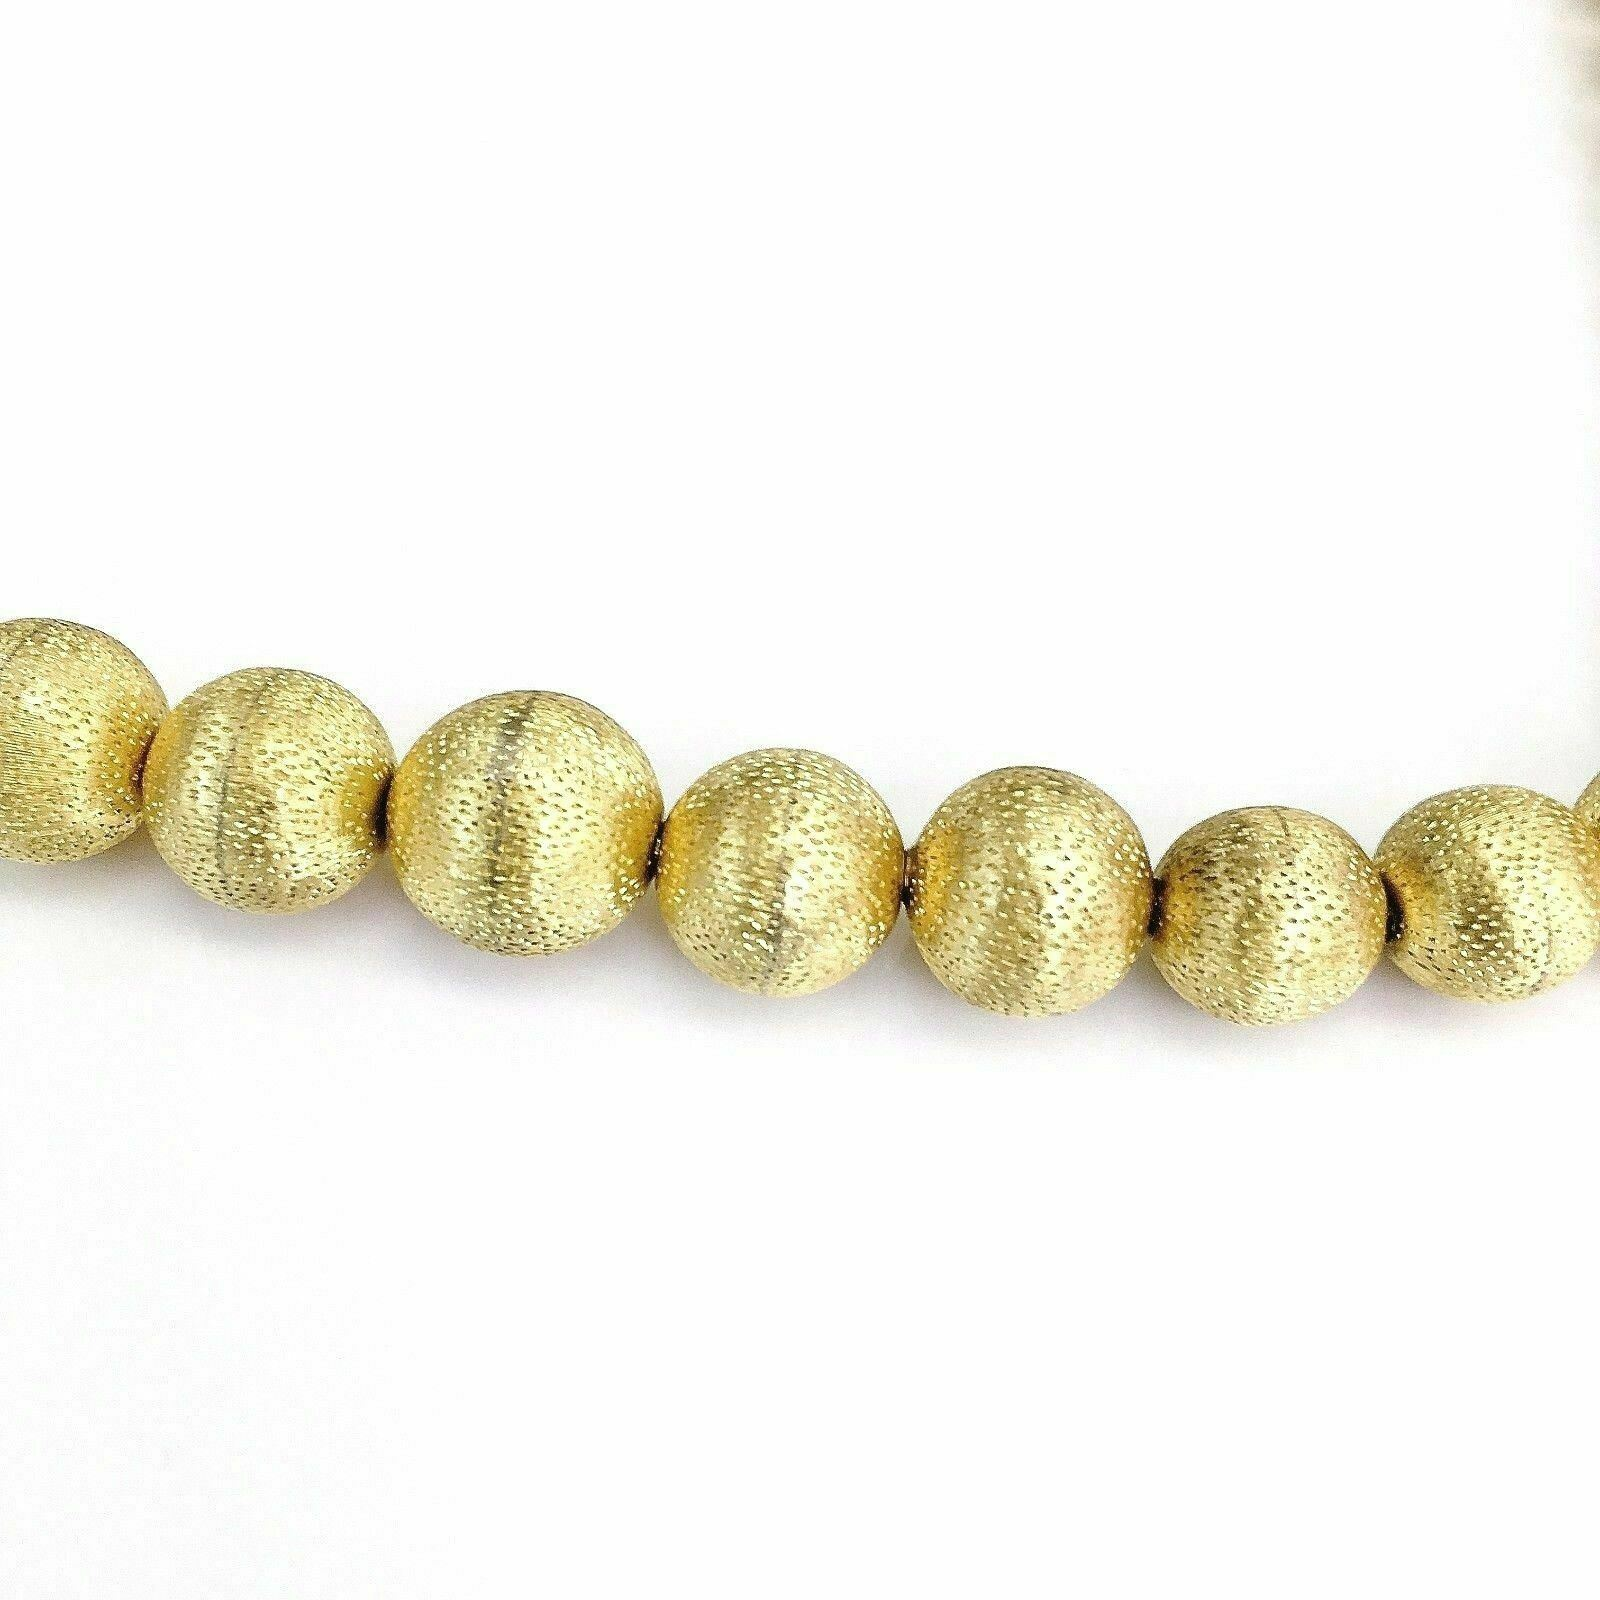 Vintage Tiffany & Co Solid 18K Gold Beaded Necklace 18 Inch 2.23 Oz 69.6 Gr